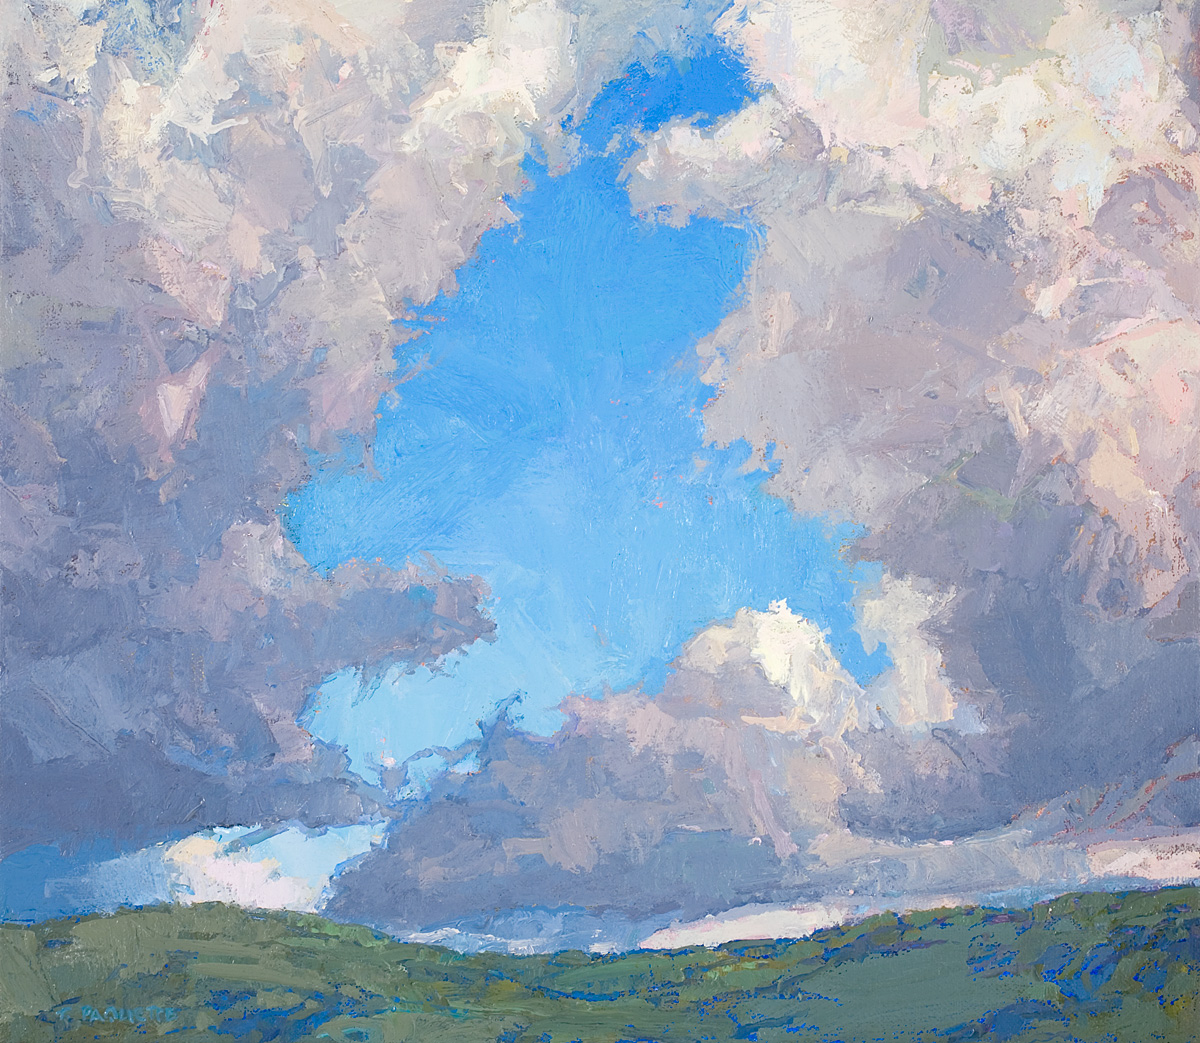 contemporary landscape oil painting of clouds over mountain ridge by Thomas Paquette